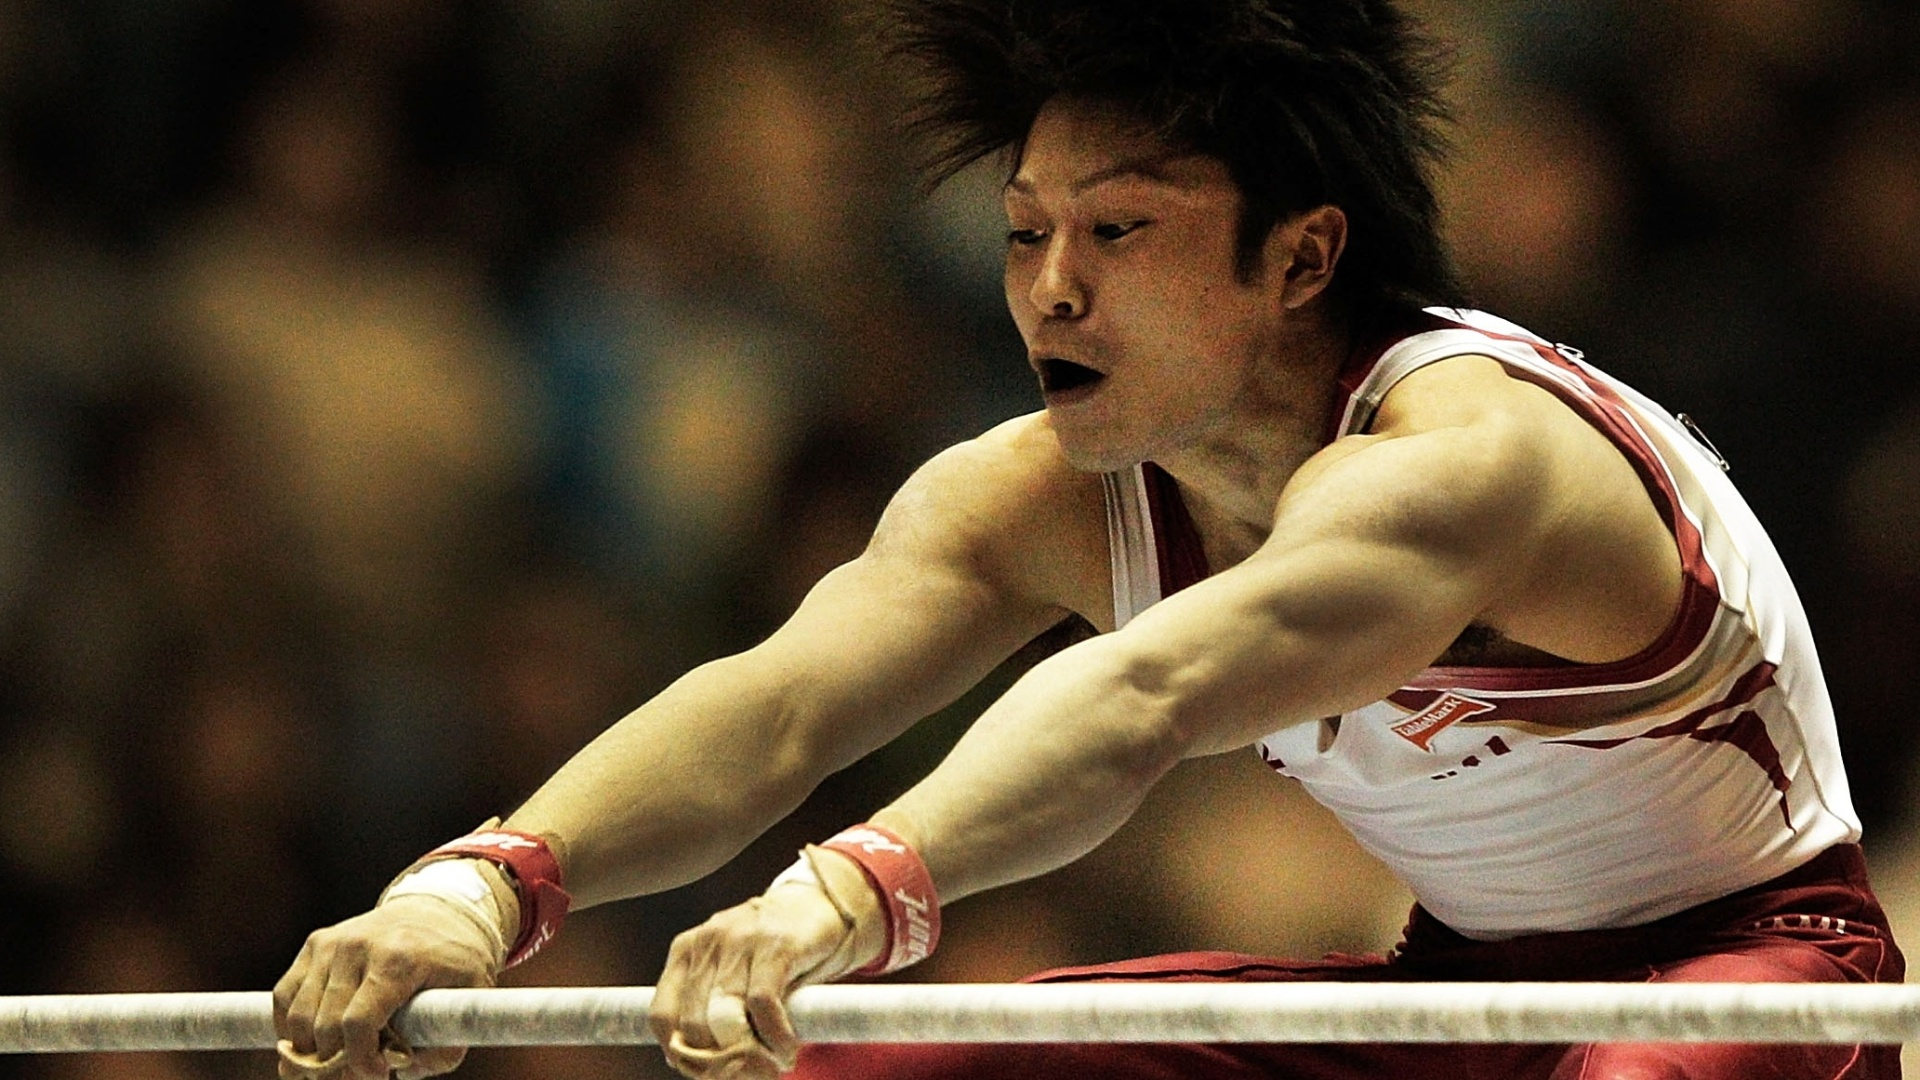 Japons Kohei Uchimura compete na barra em evento de ginstica, em Tquio